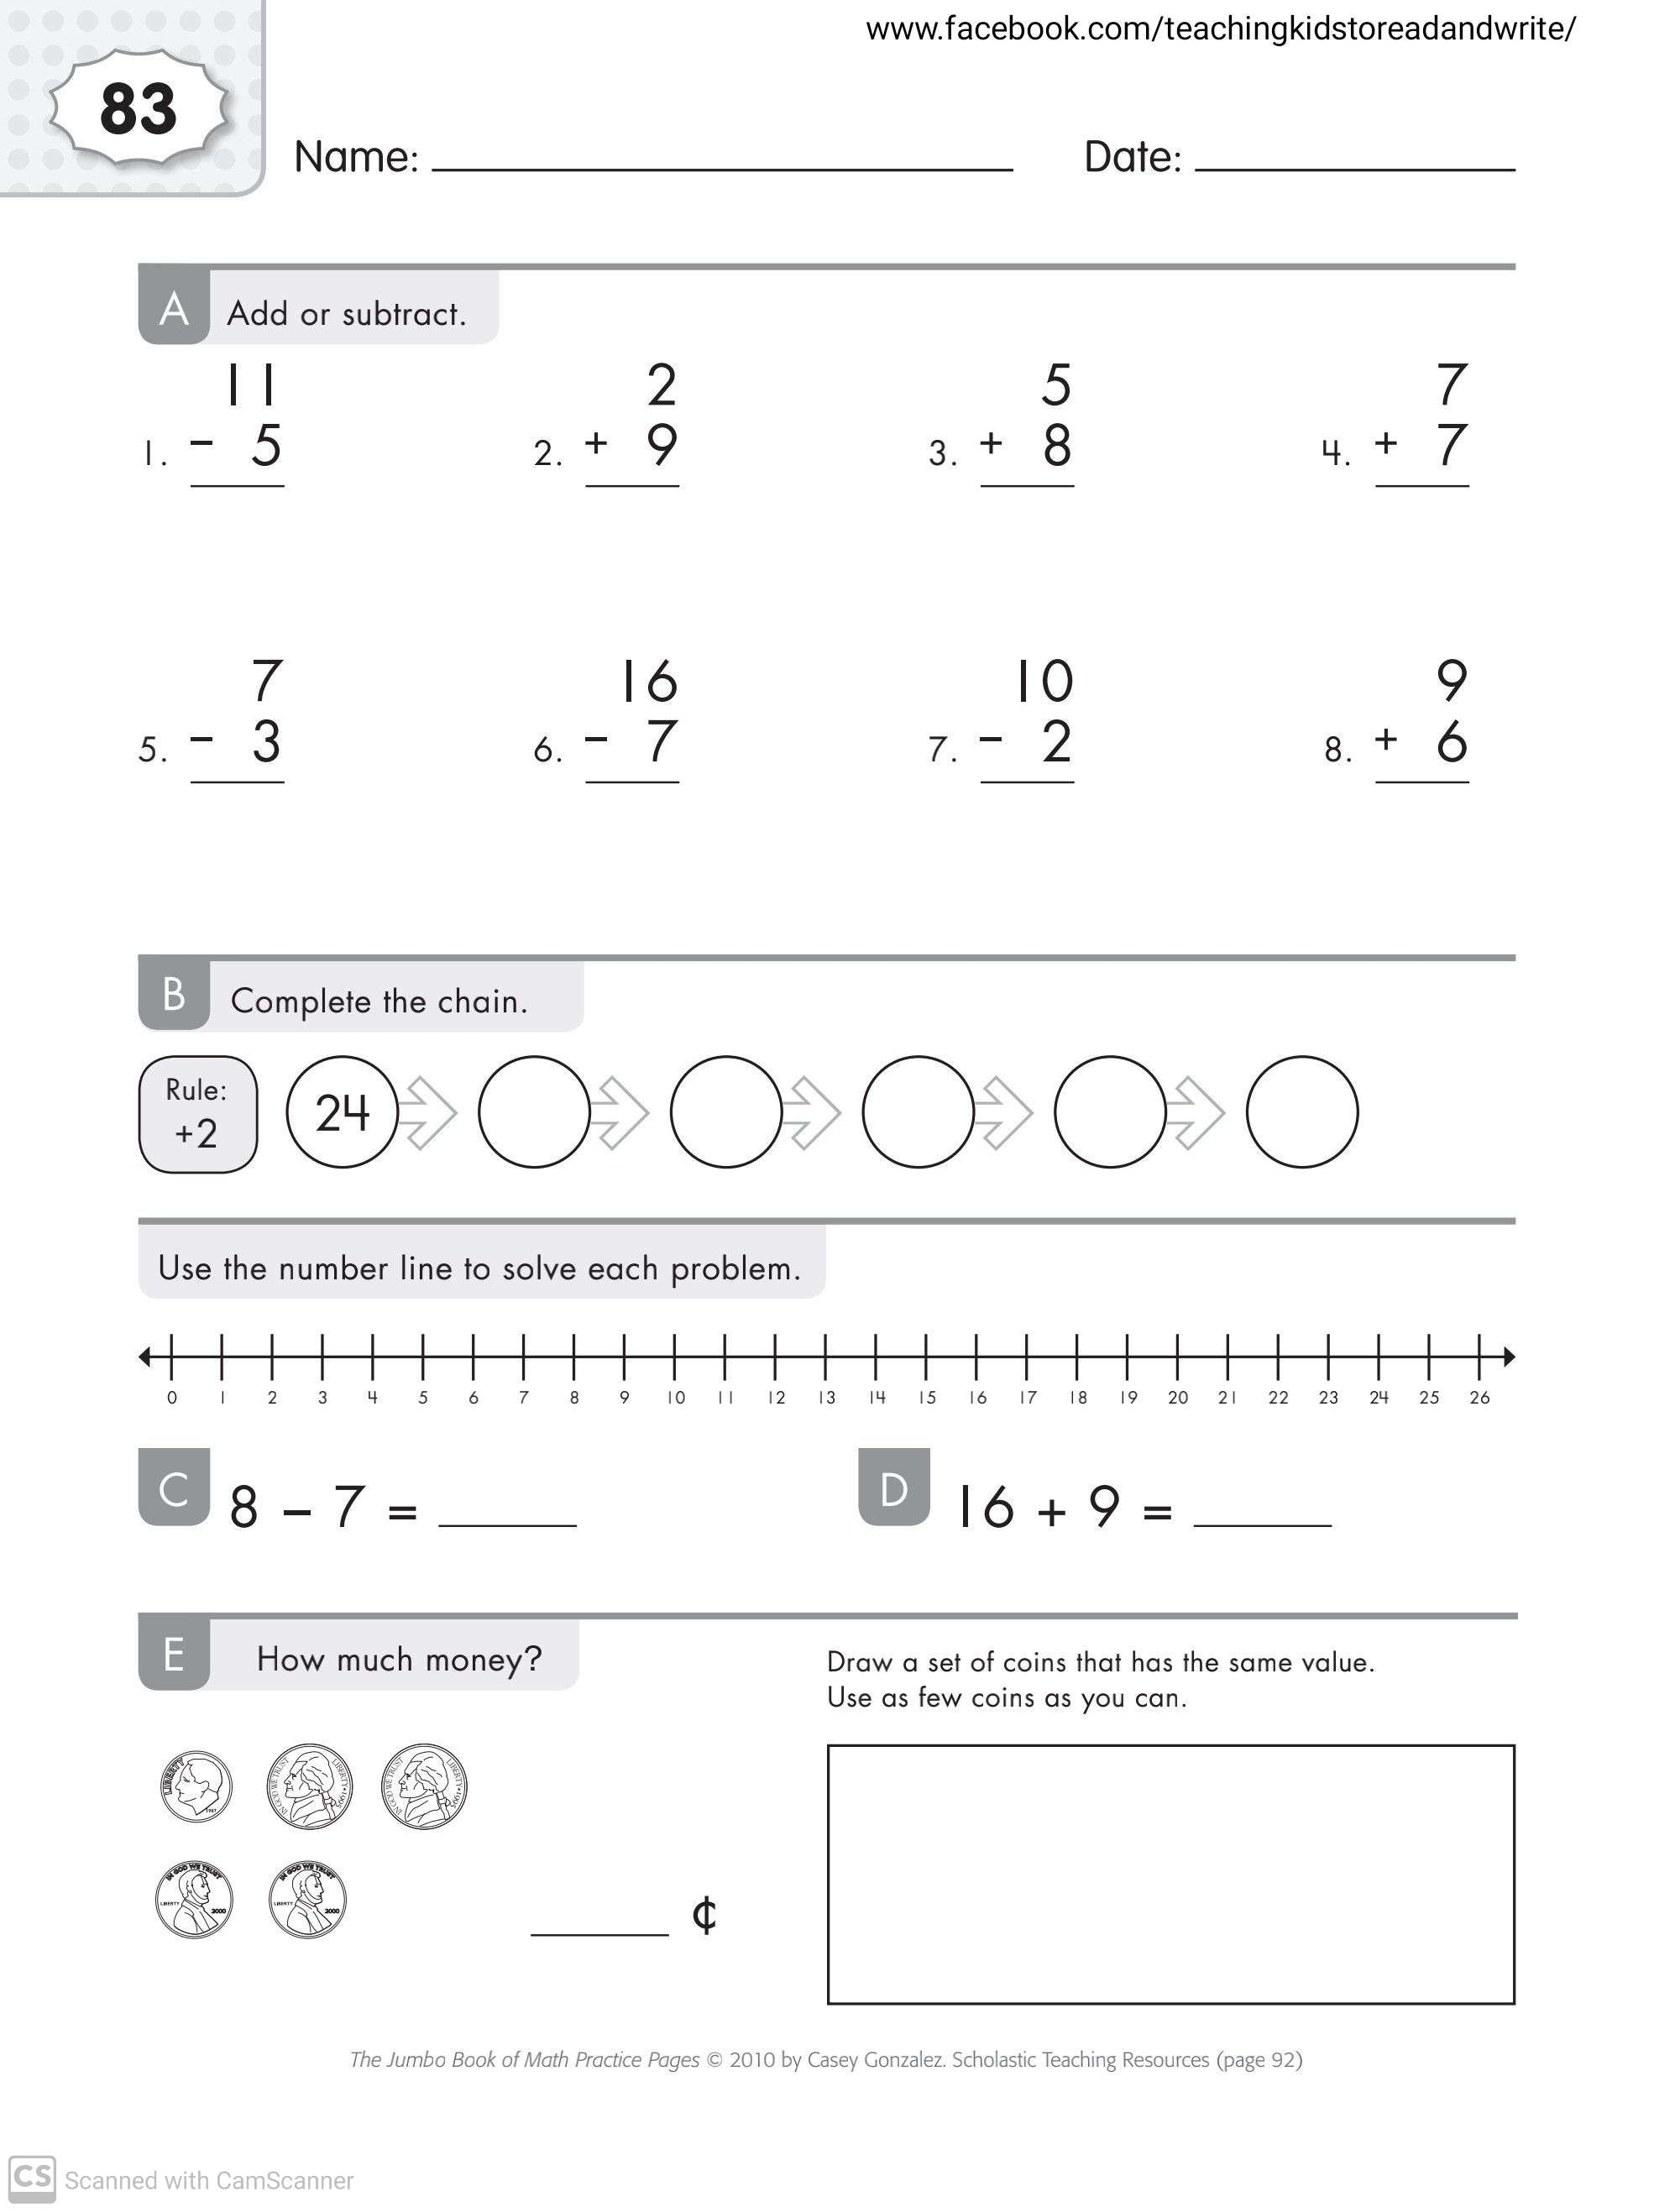 Maths Worksheets For Grade 1 Part 3 Teaching Kids To